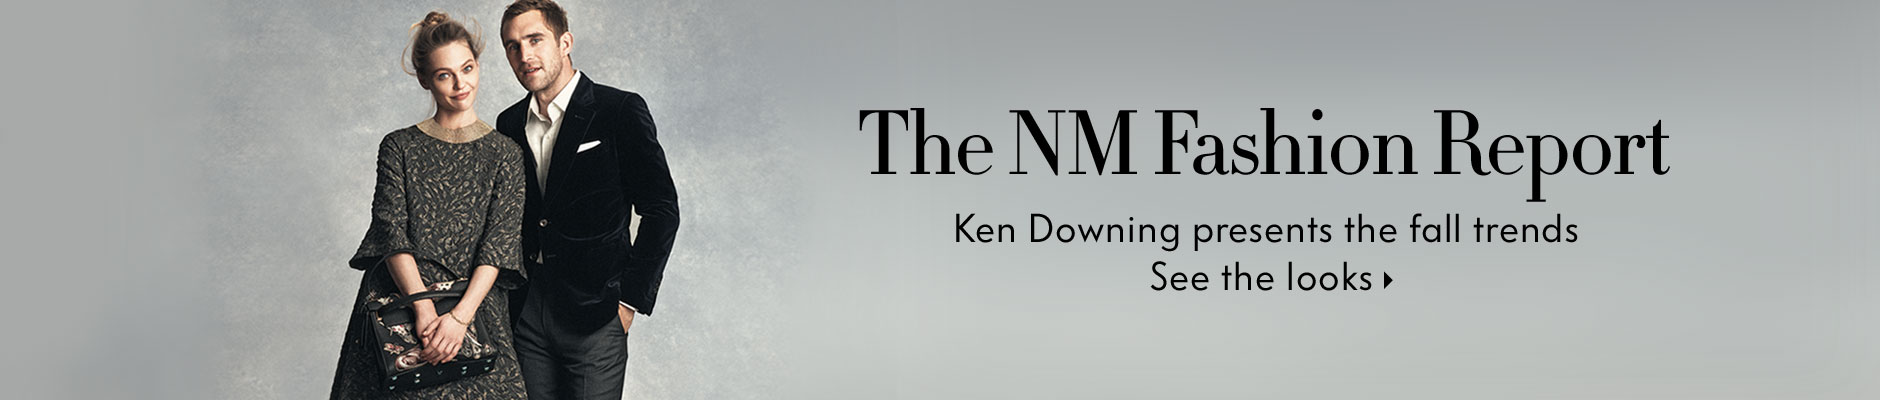 The NM Fashion Report - Ken Downing presents the fall trends